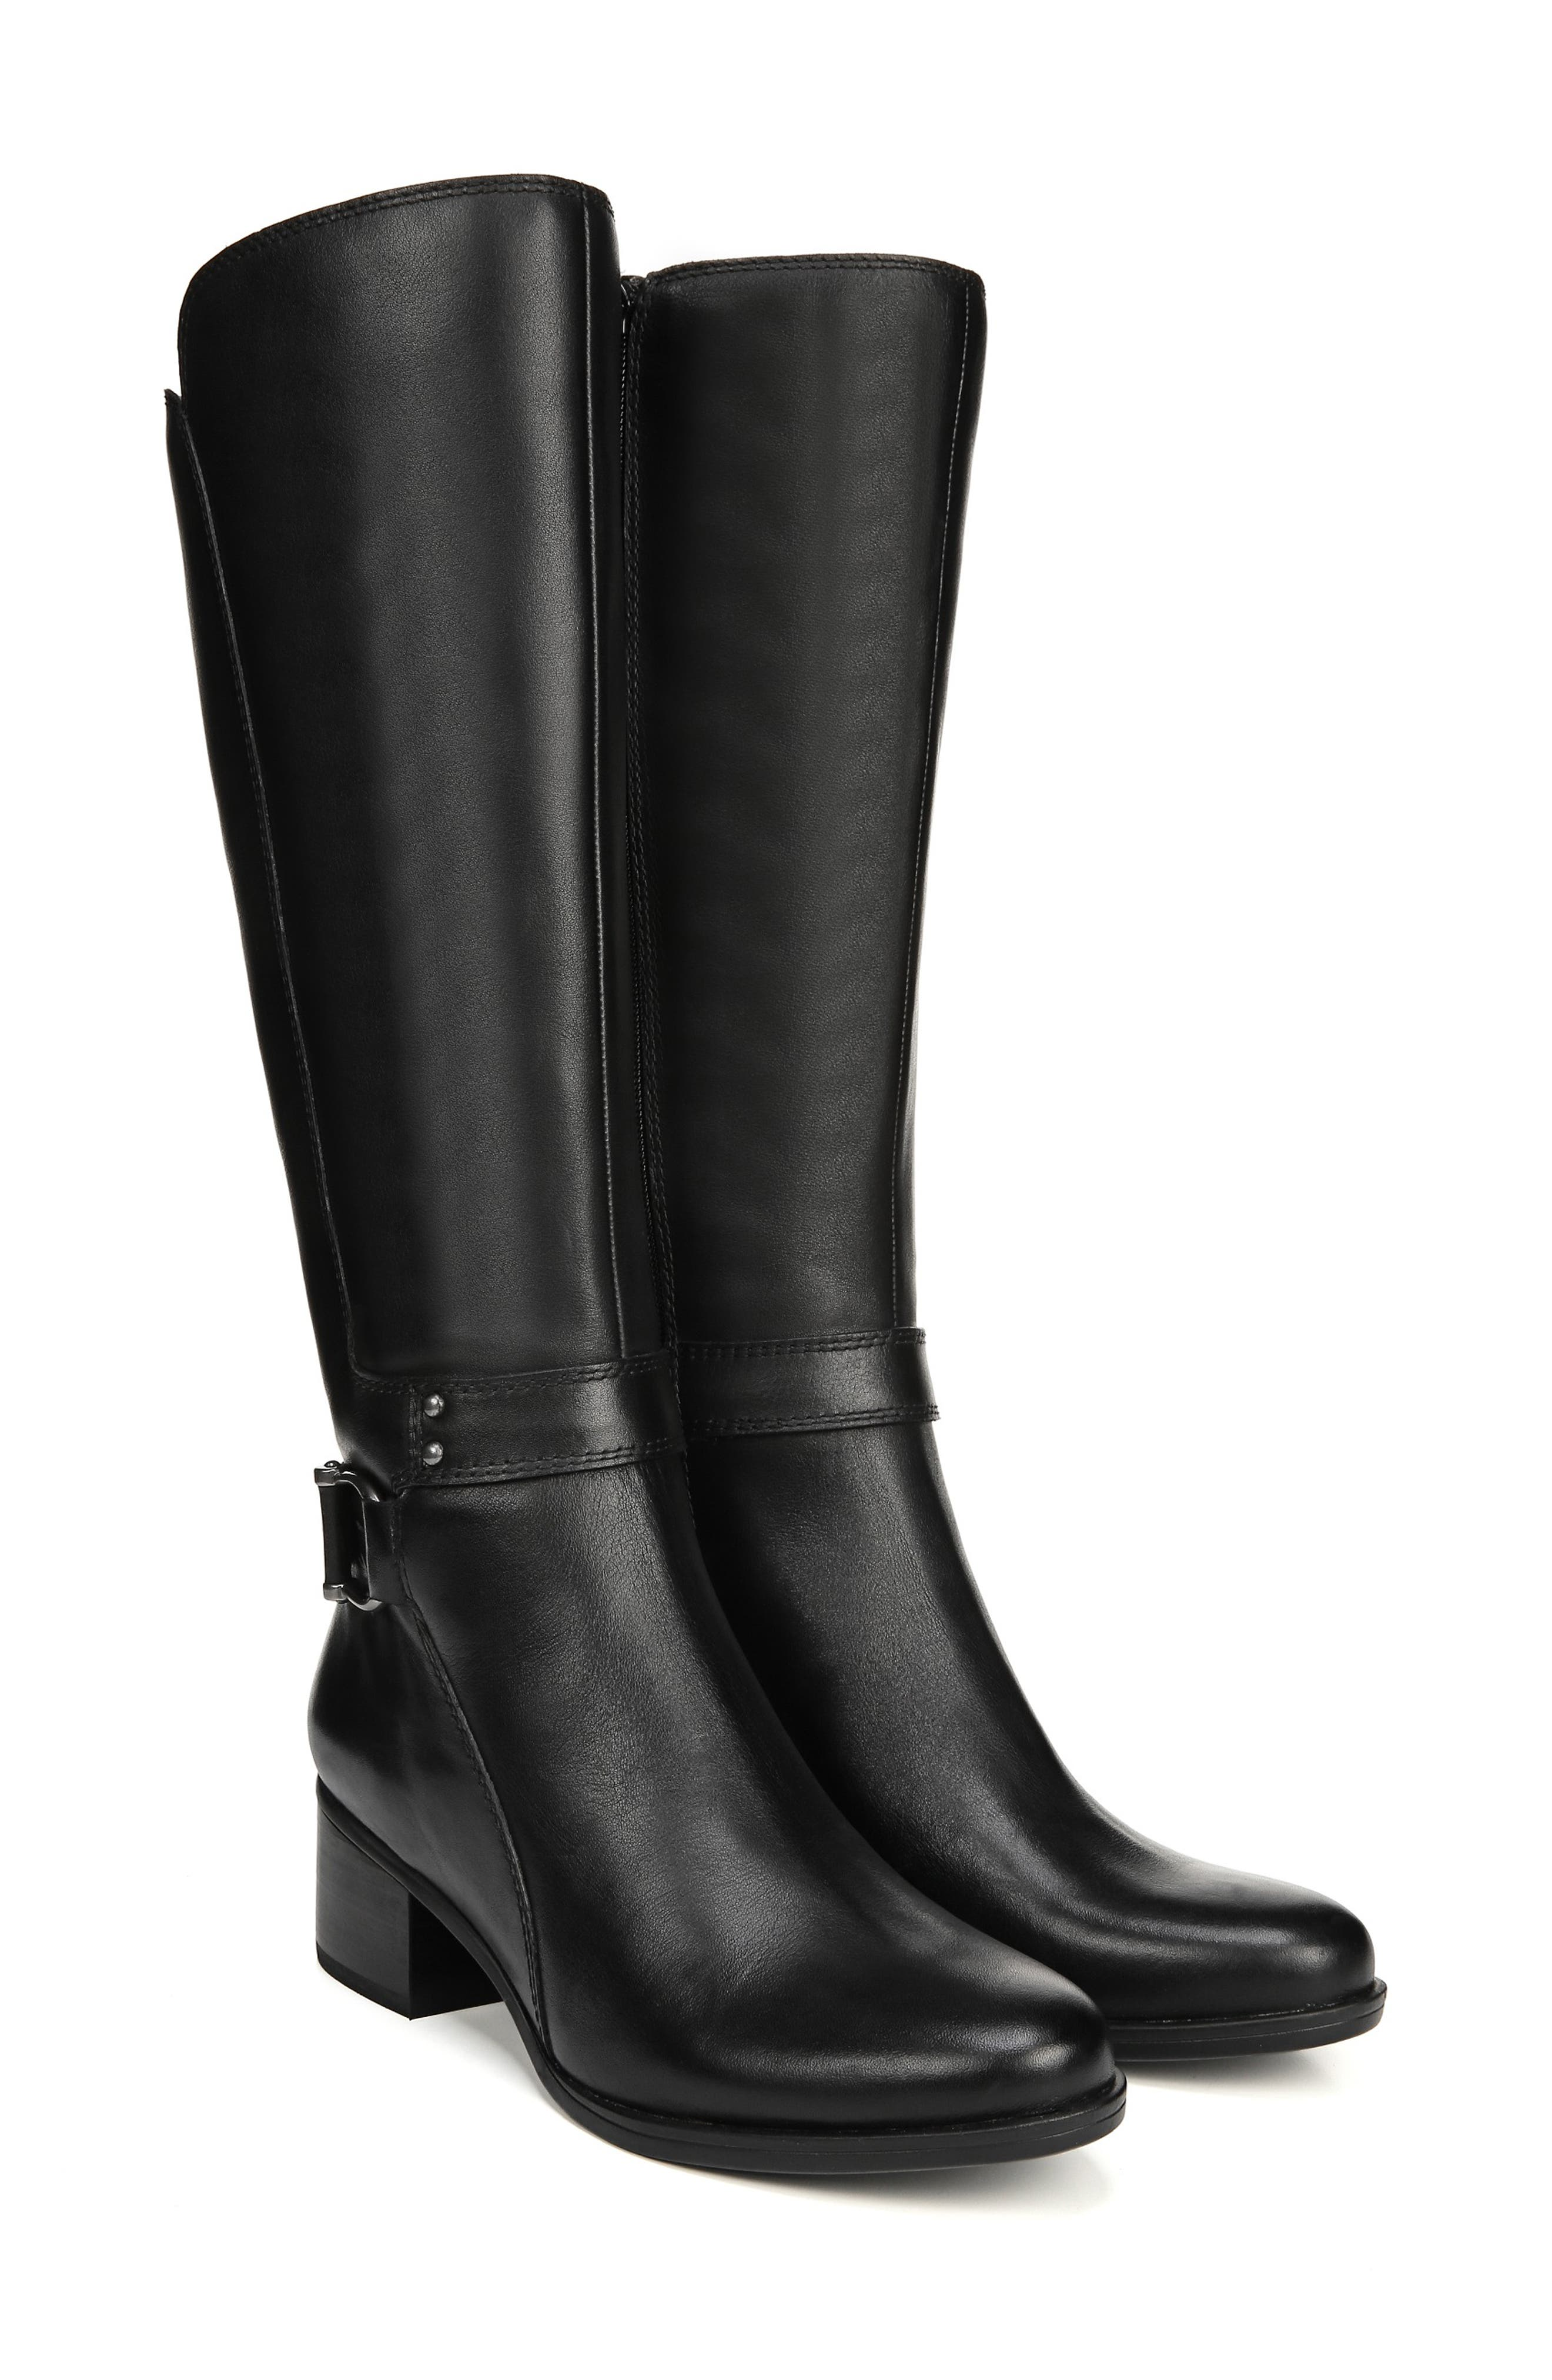 NATURALIZER, Dane Knee High Riding Boot, Alternate thumbnail 8, color, BLACK LEATHER